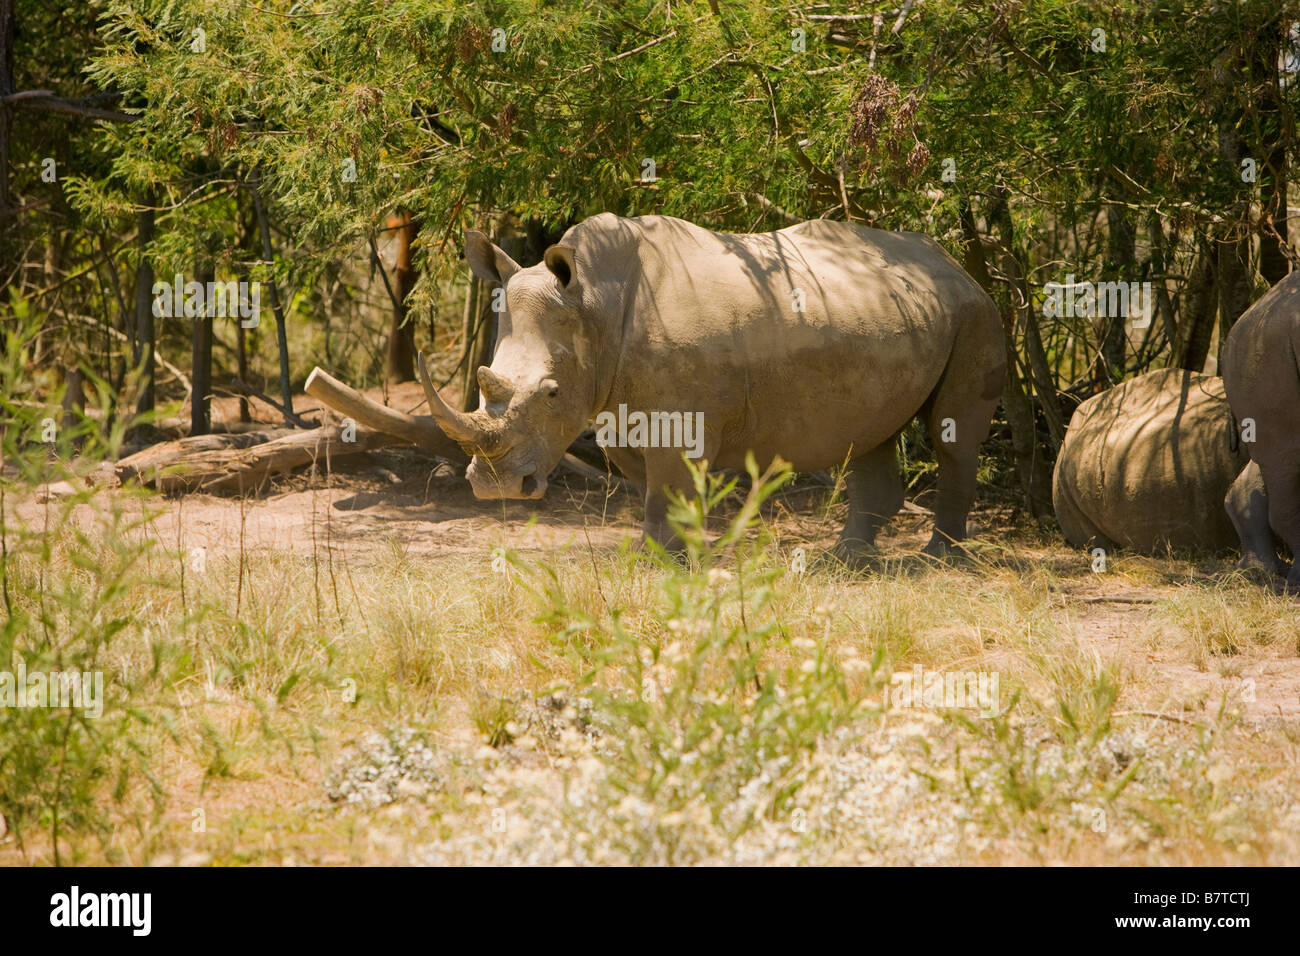 White rhino in South Africa - Stock Image